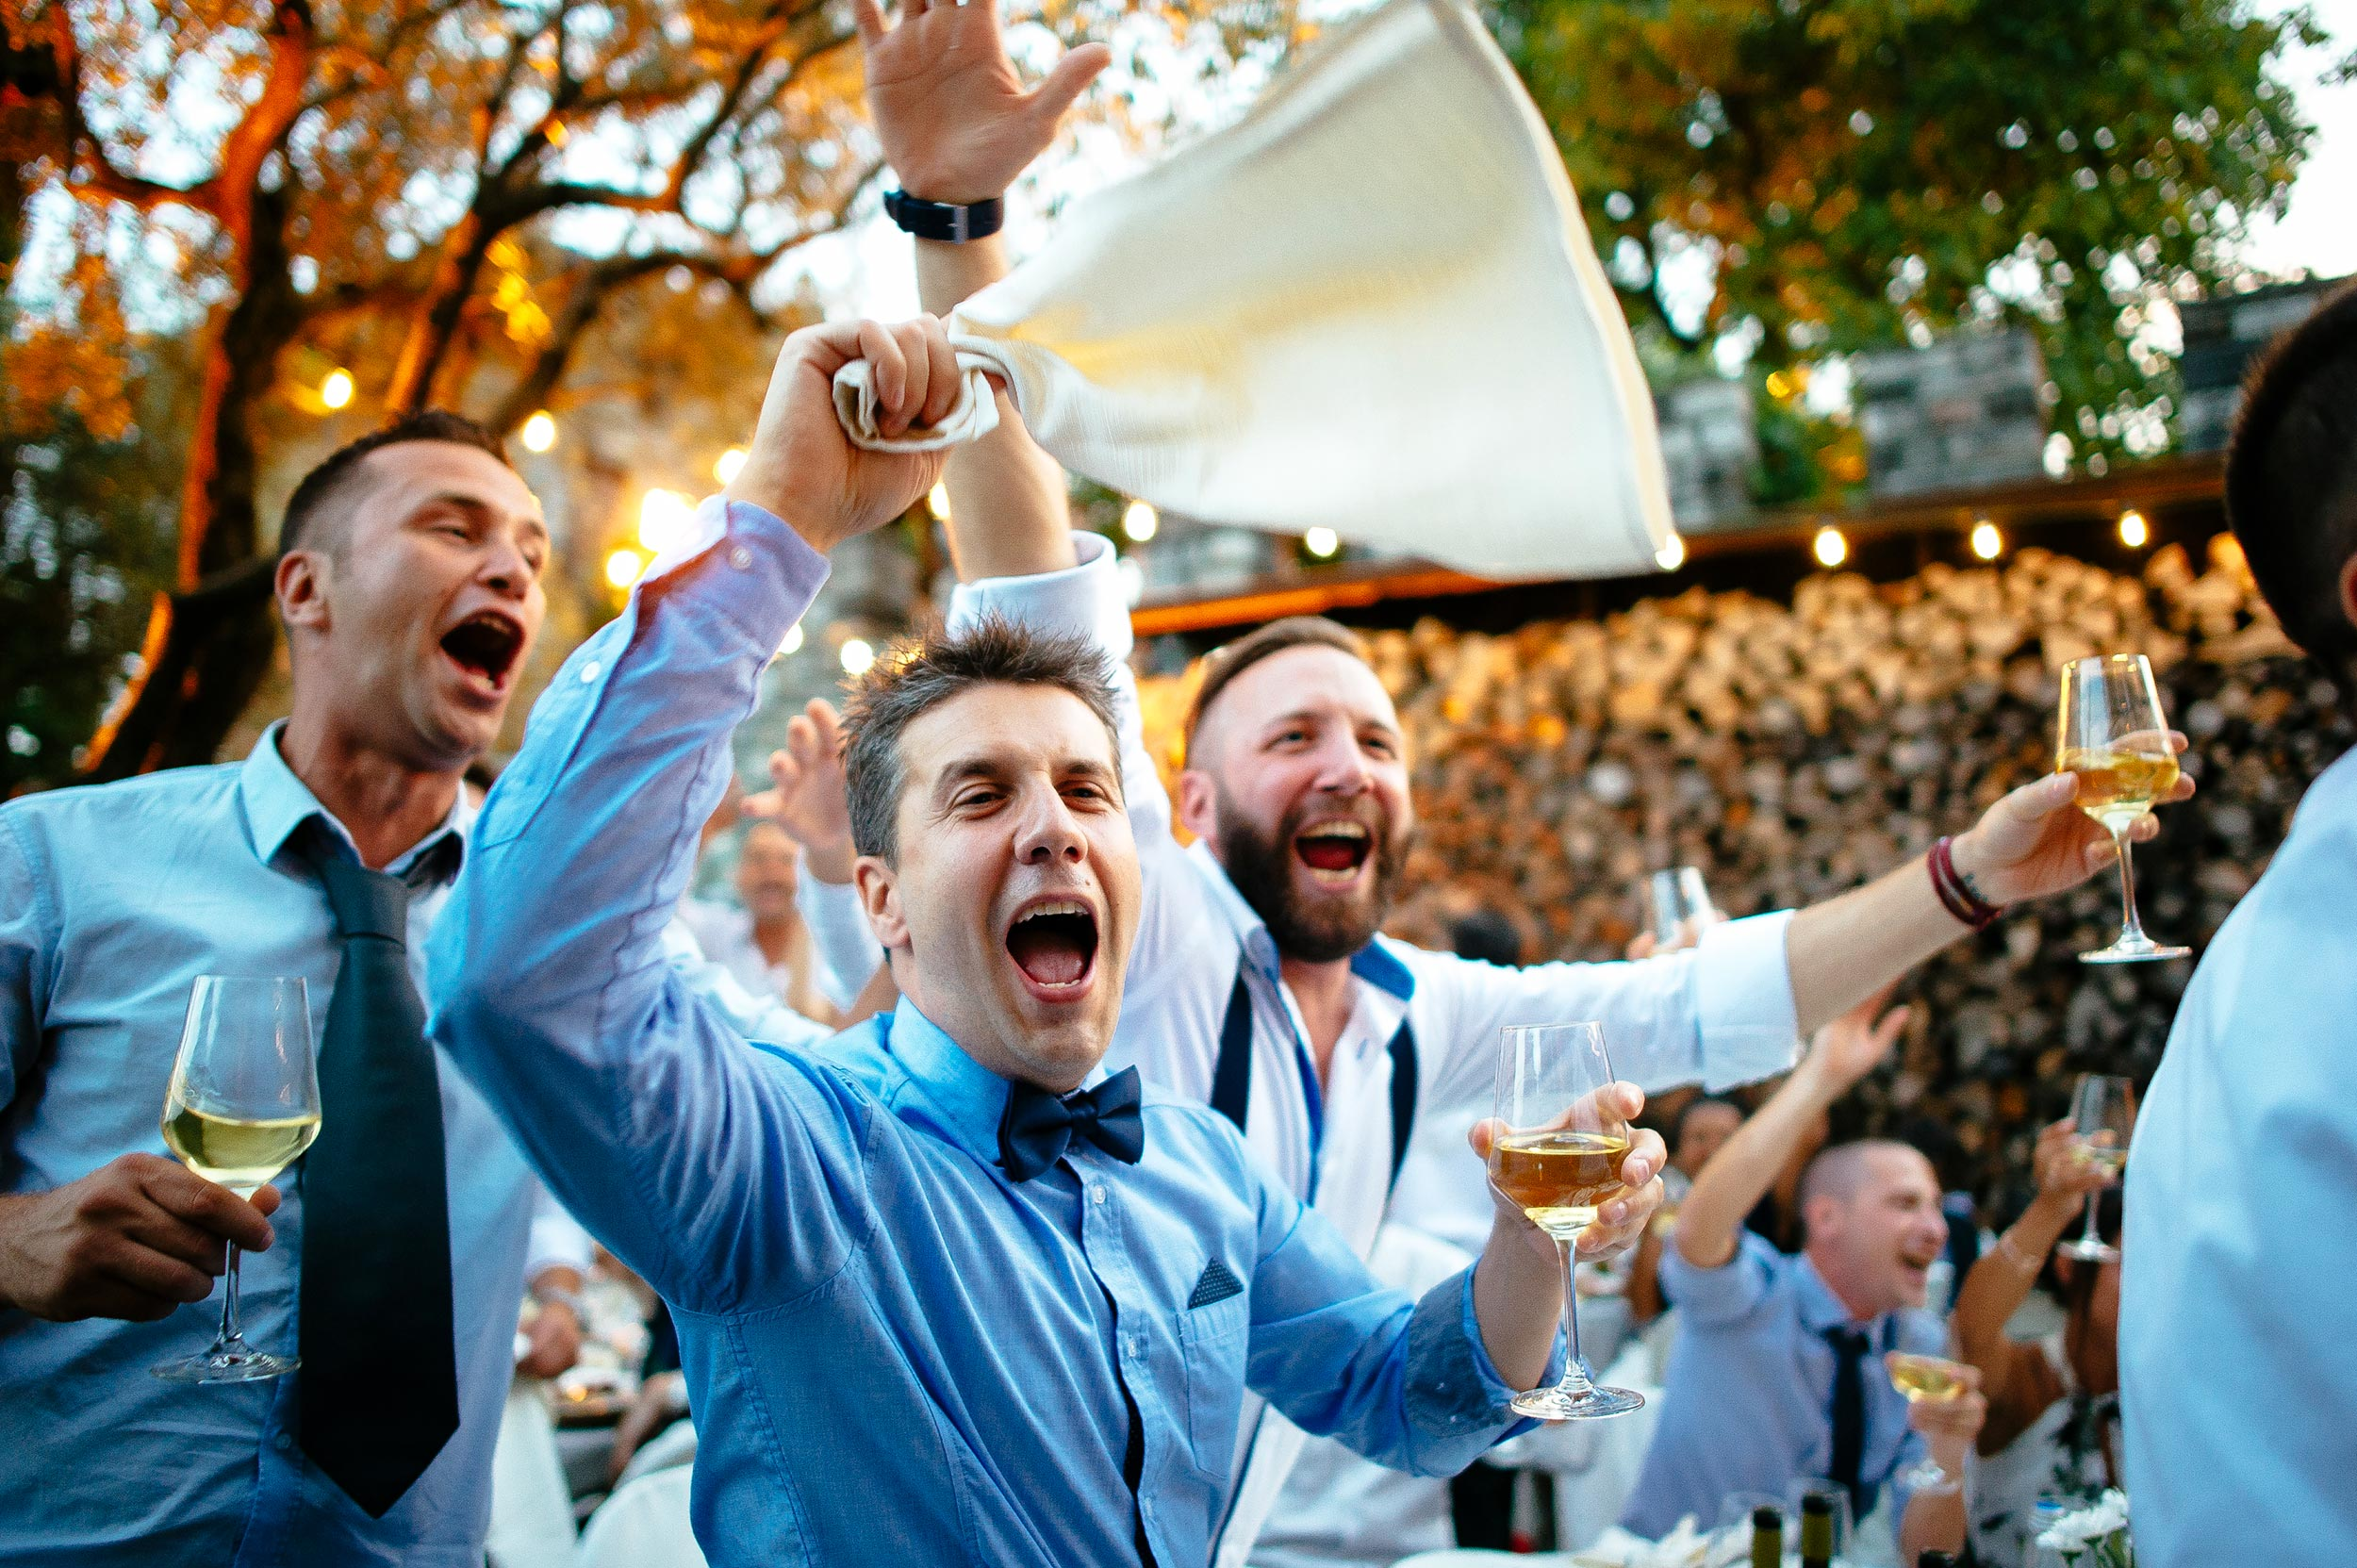 friends-of-the-bride-and-groom-partying-at-the-reception-wedding-in-italy.jpg